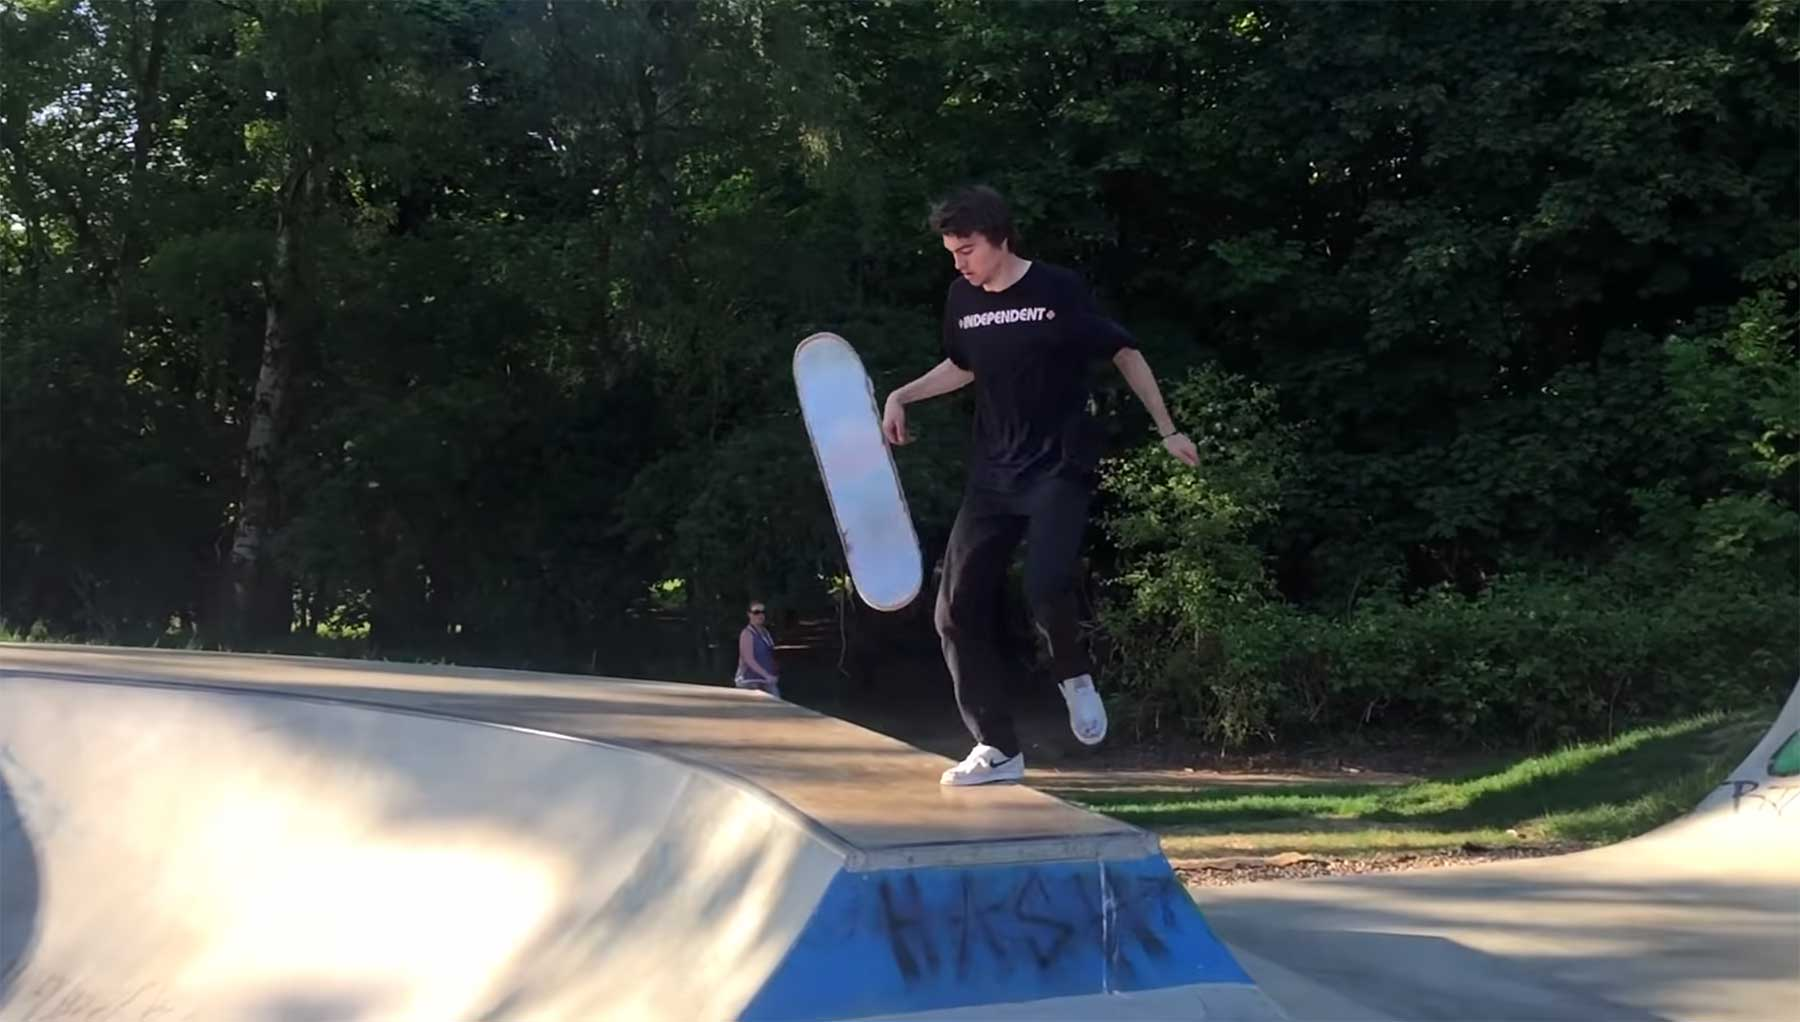 Smoothe Skateboard-Tricks von Ellis Frost Ellis-Frost-Summer-On-The-Telephone